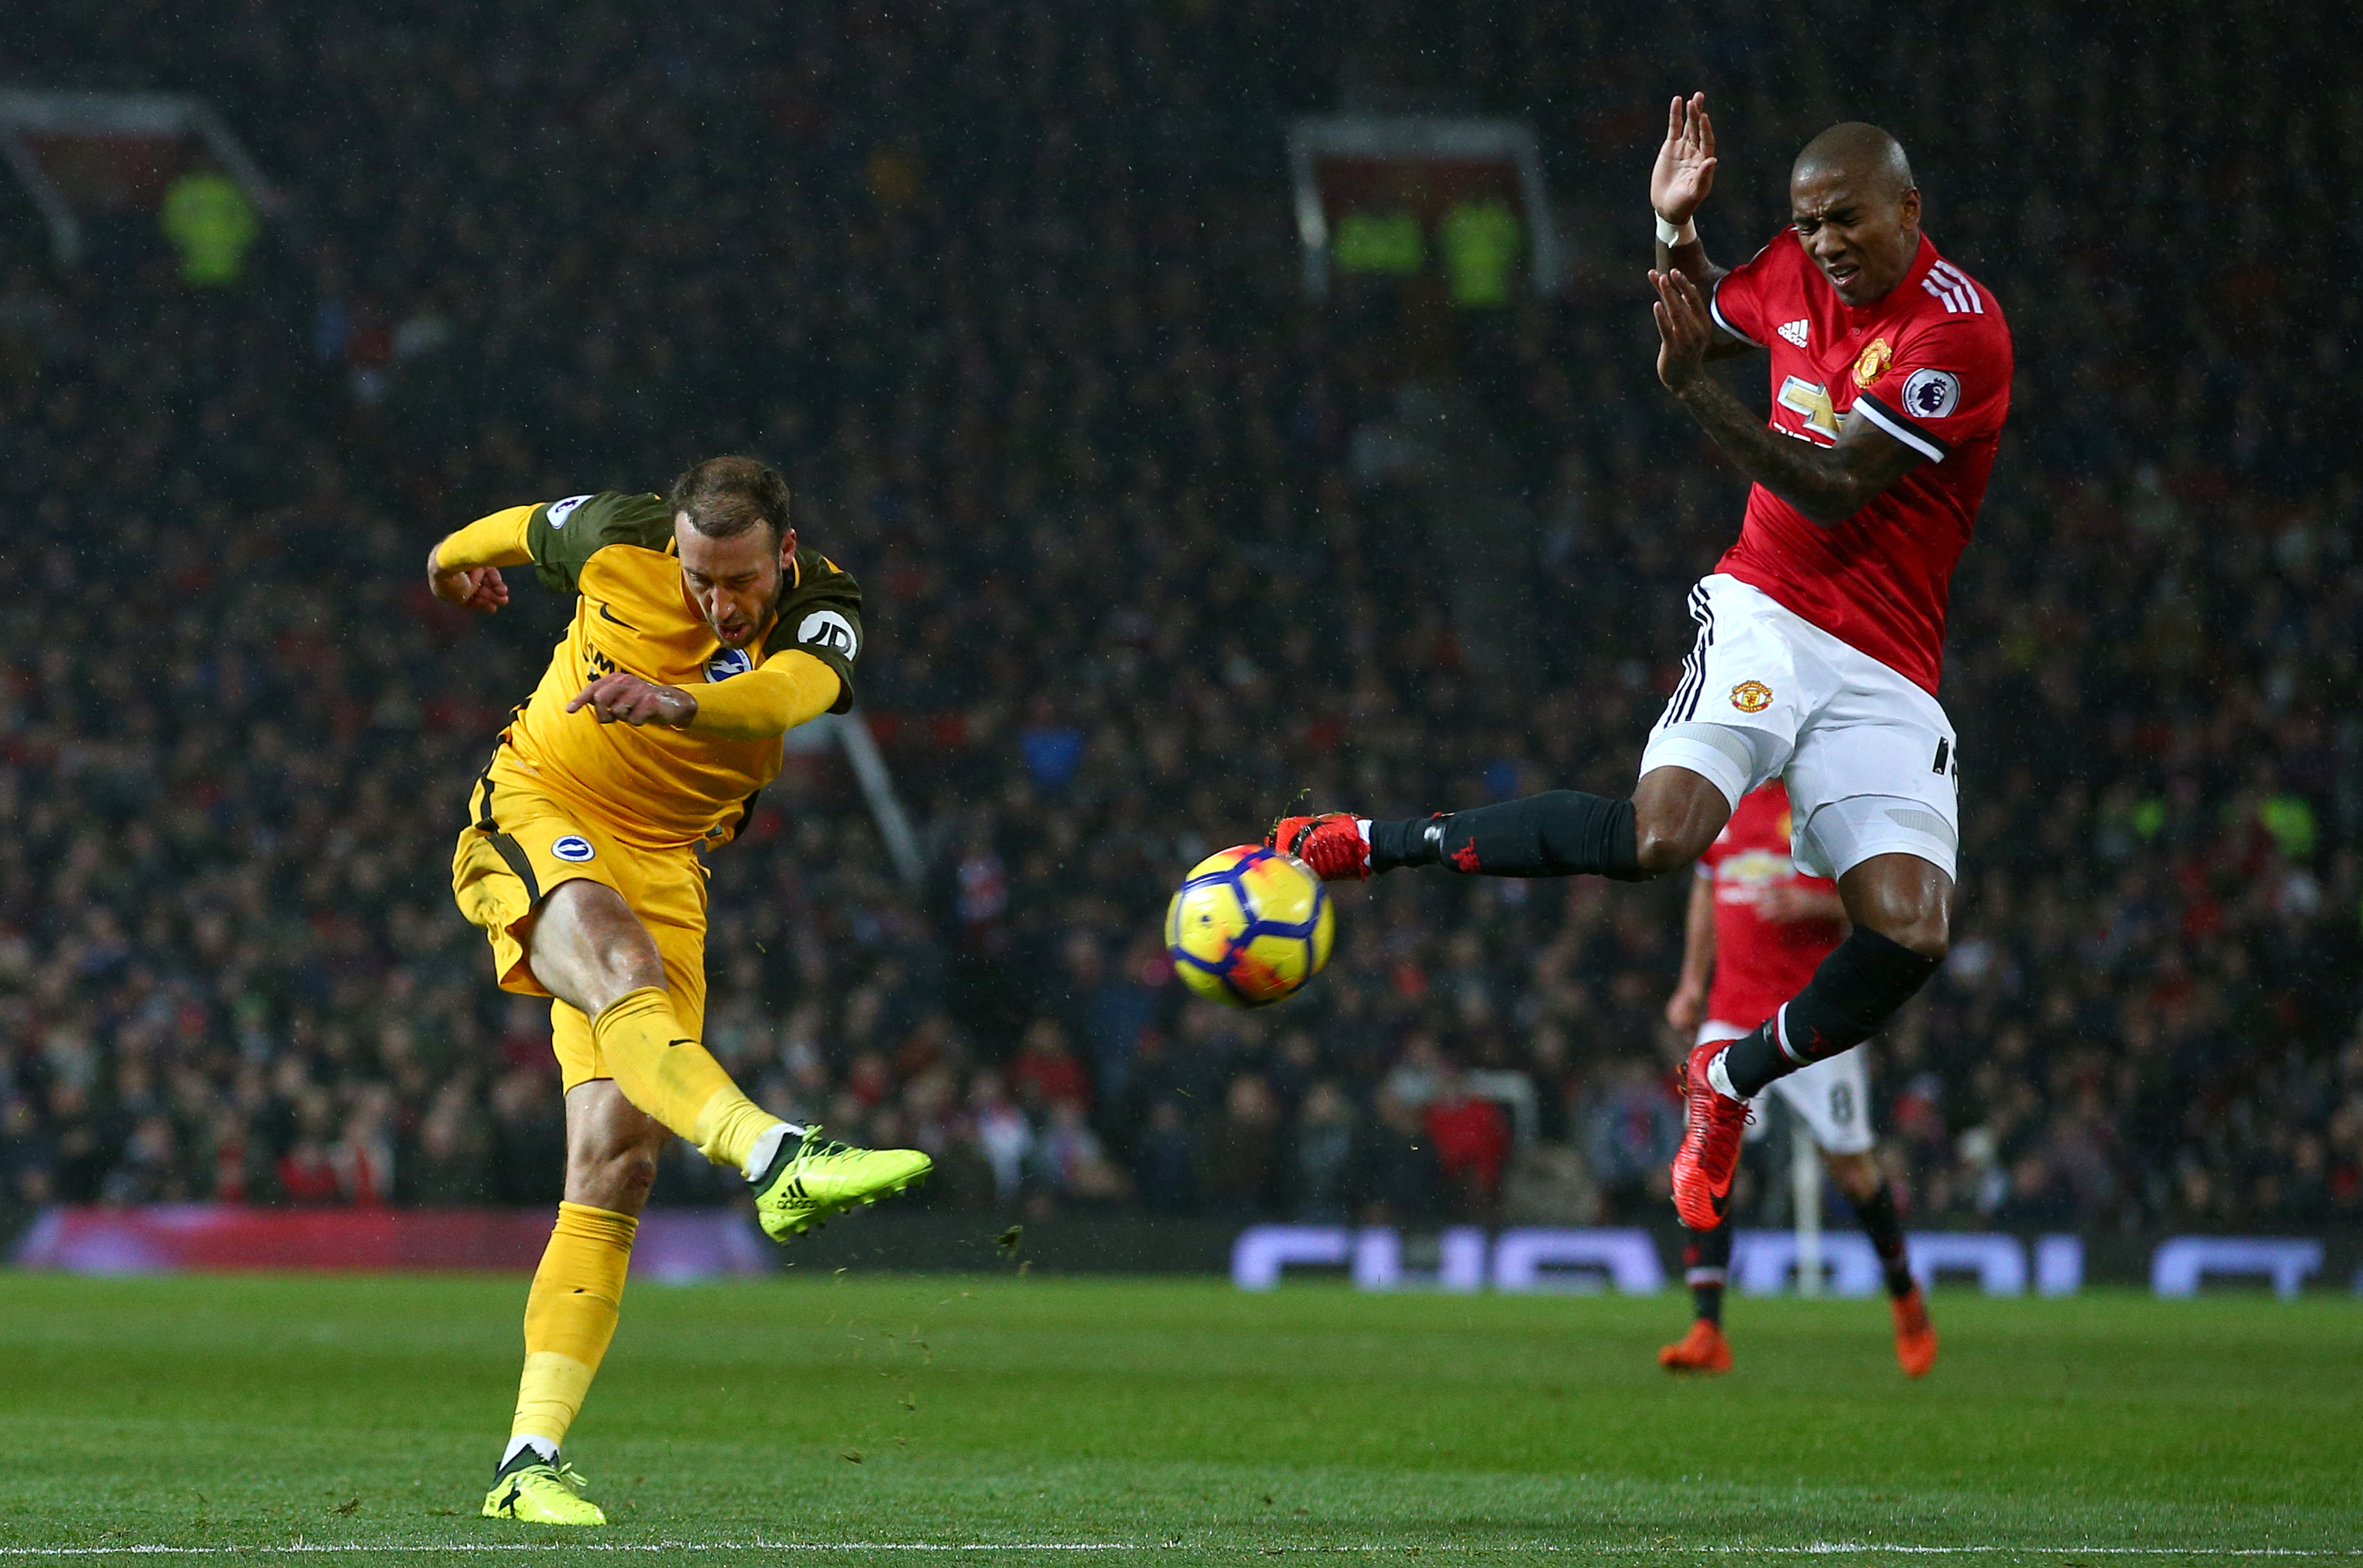 Ashley Young goes to block the ball in a game against Brighton